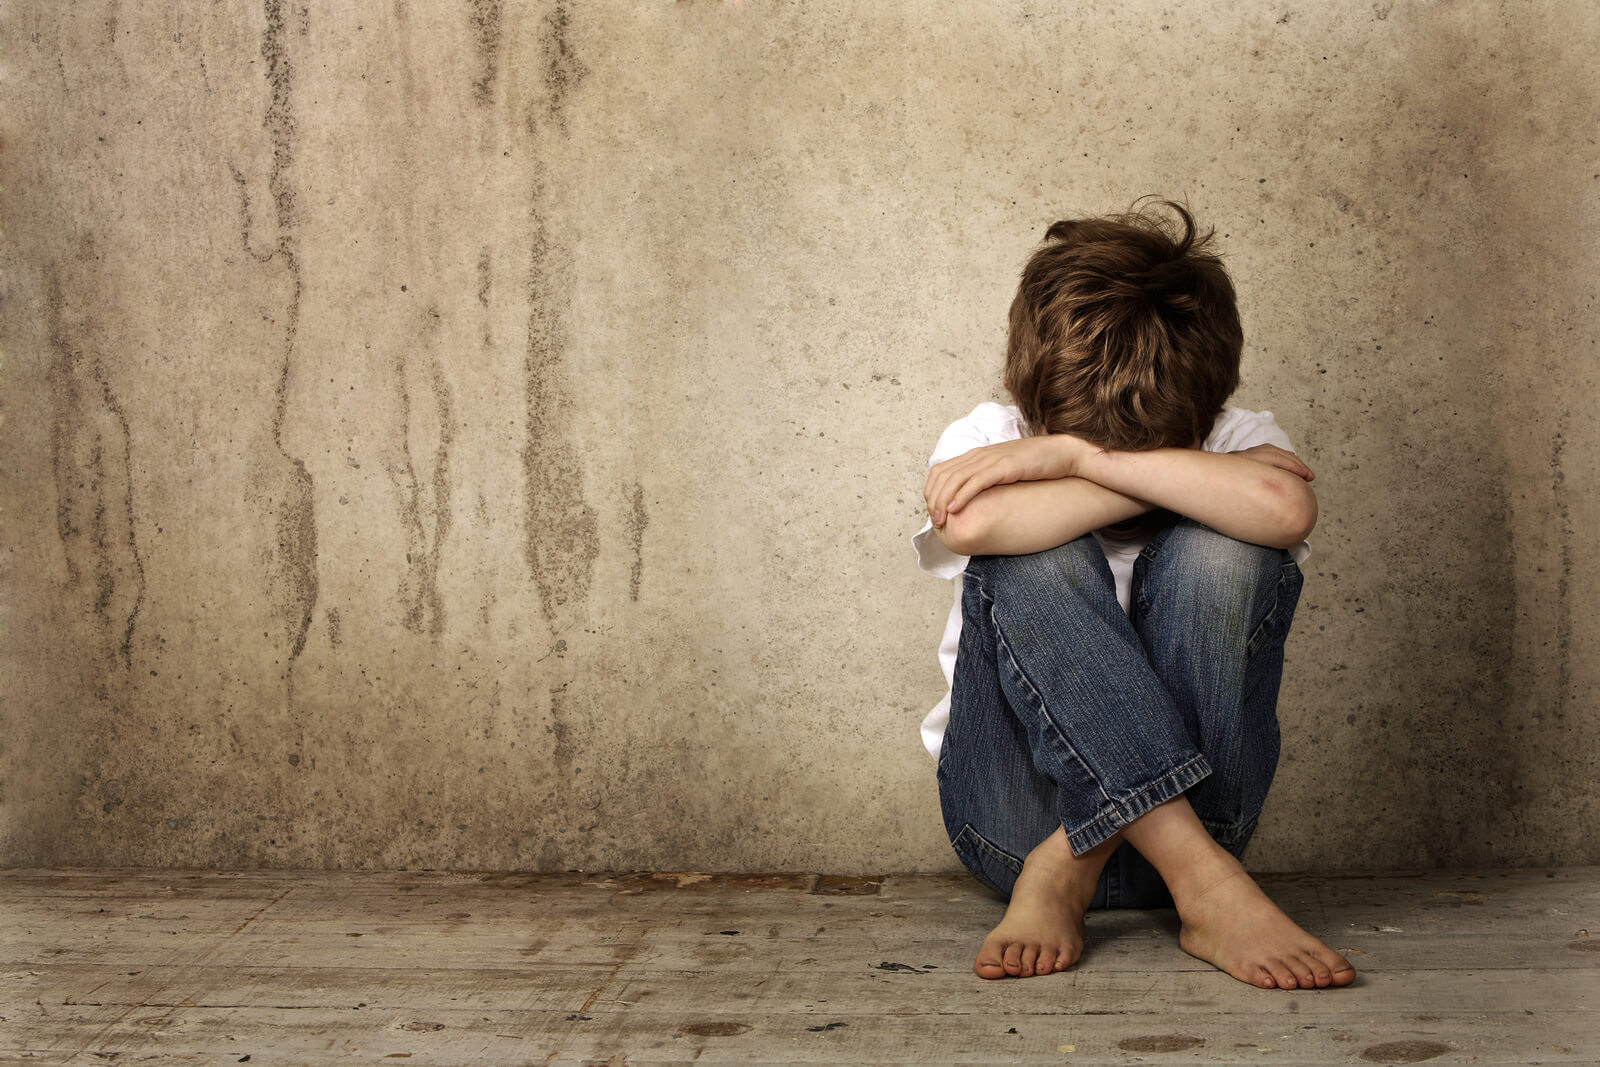 Absence Of A Father Effects Physical significances & Behavior Of Boys